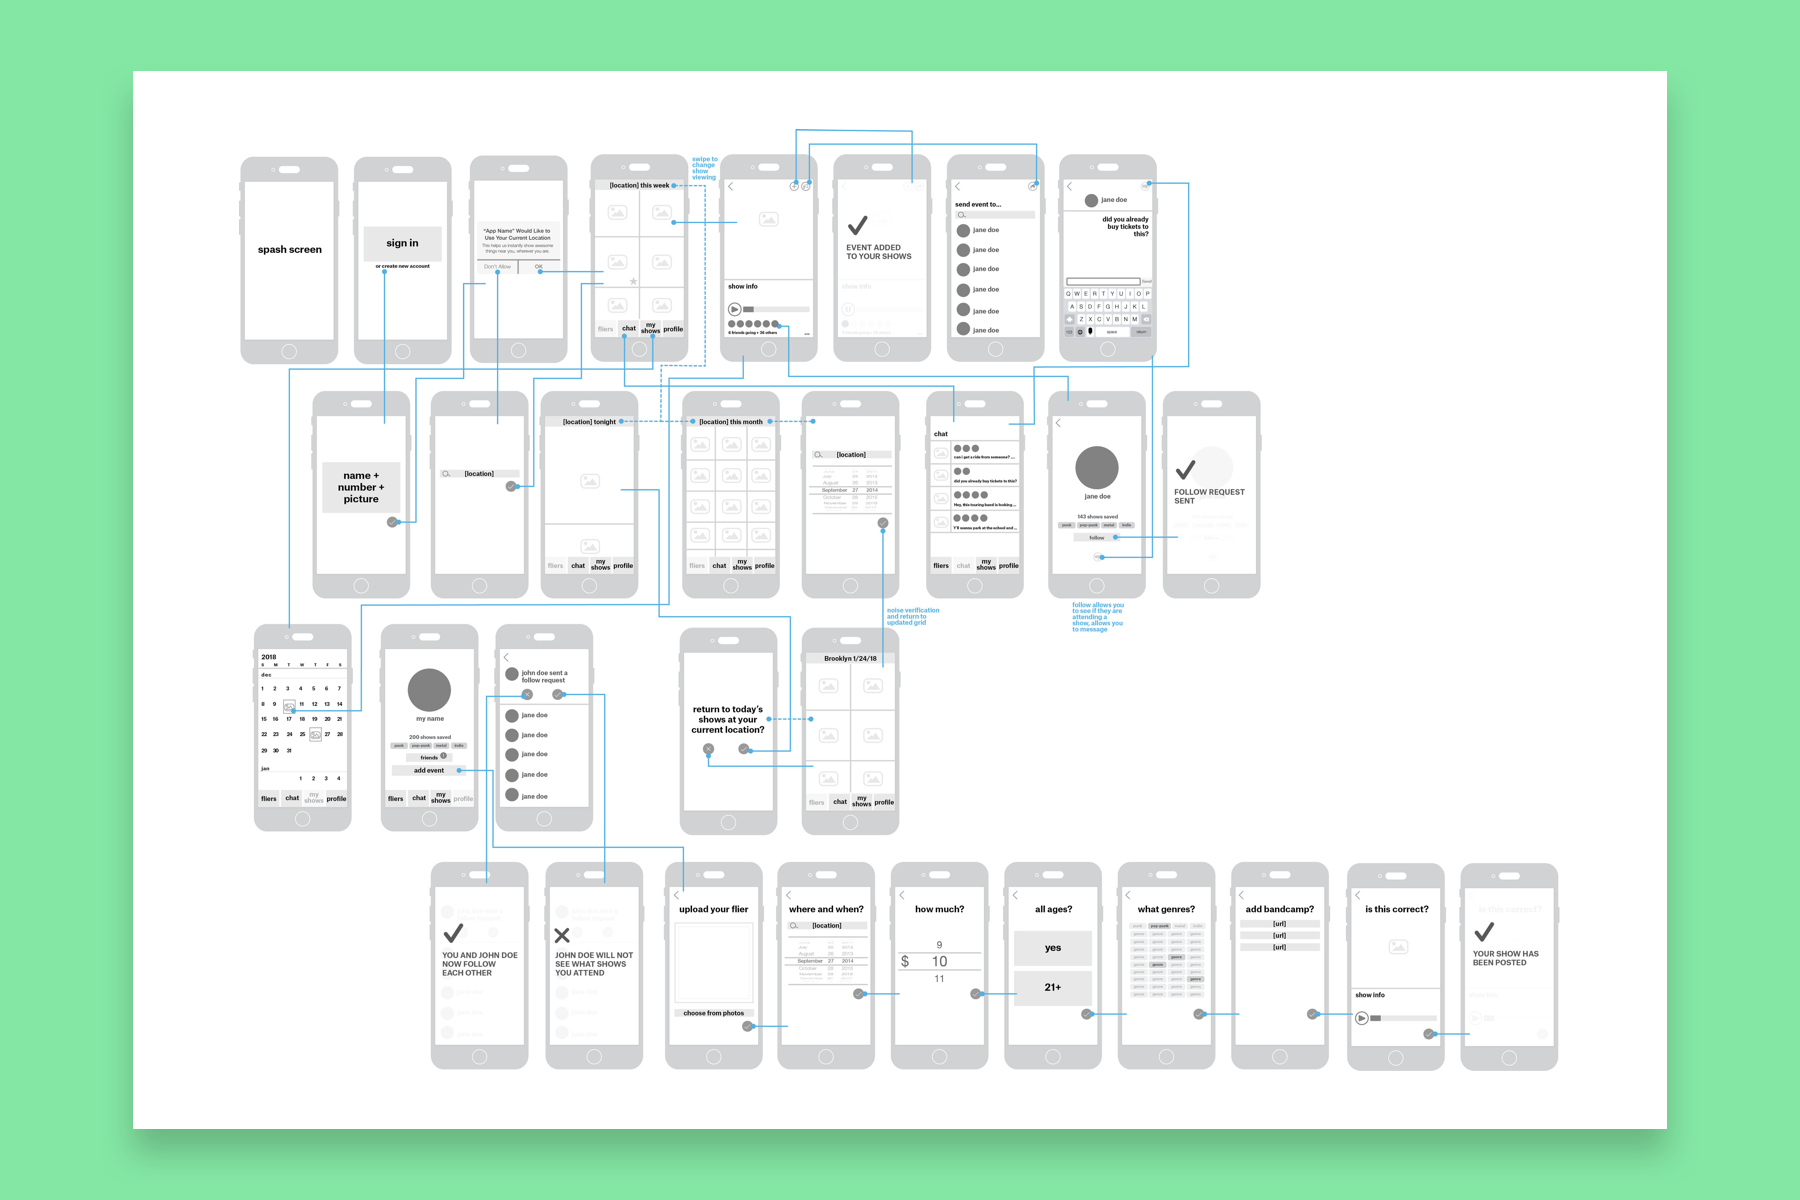 Laken Wright's wireframes and app flow for her mobile app project.